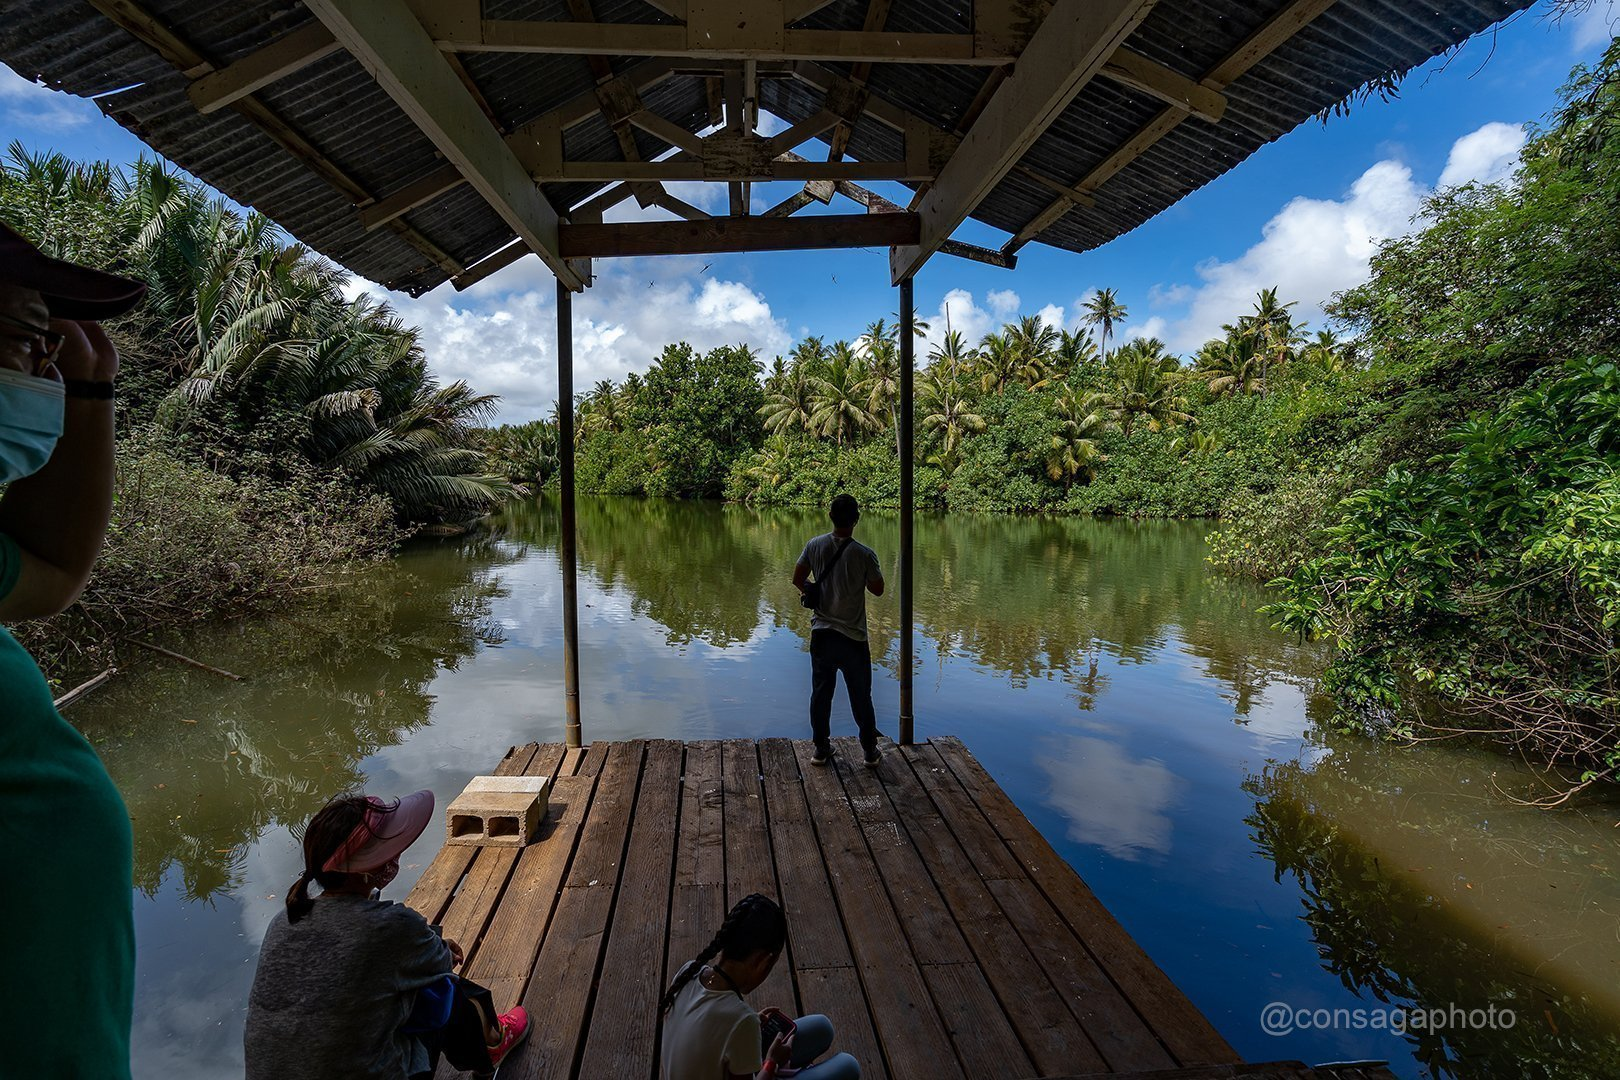 An Outdoor Adventure Things to do on Guam Photo Walk Tour with Victor Consaga